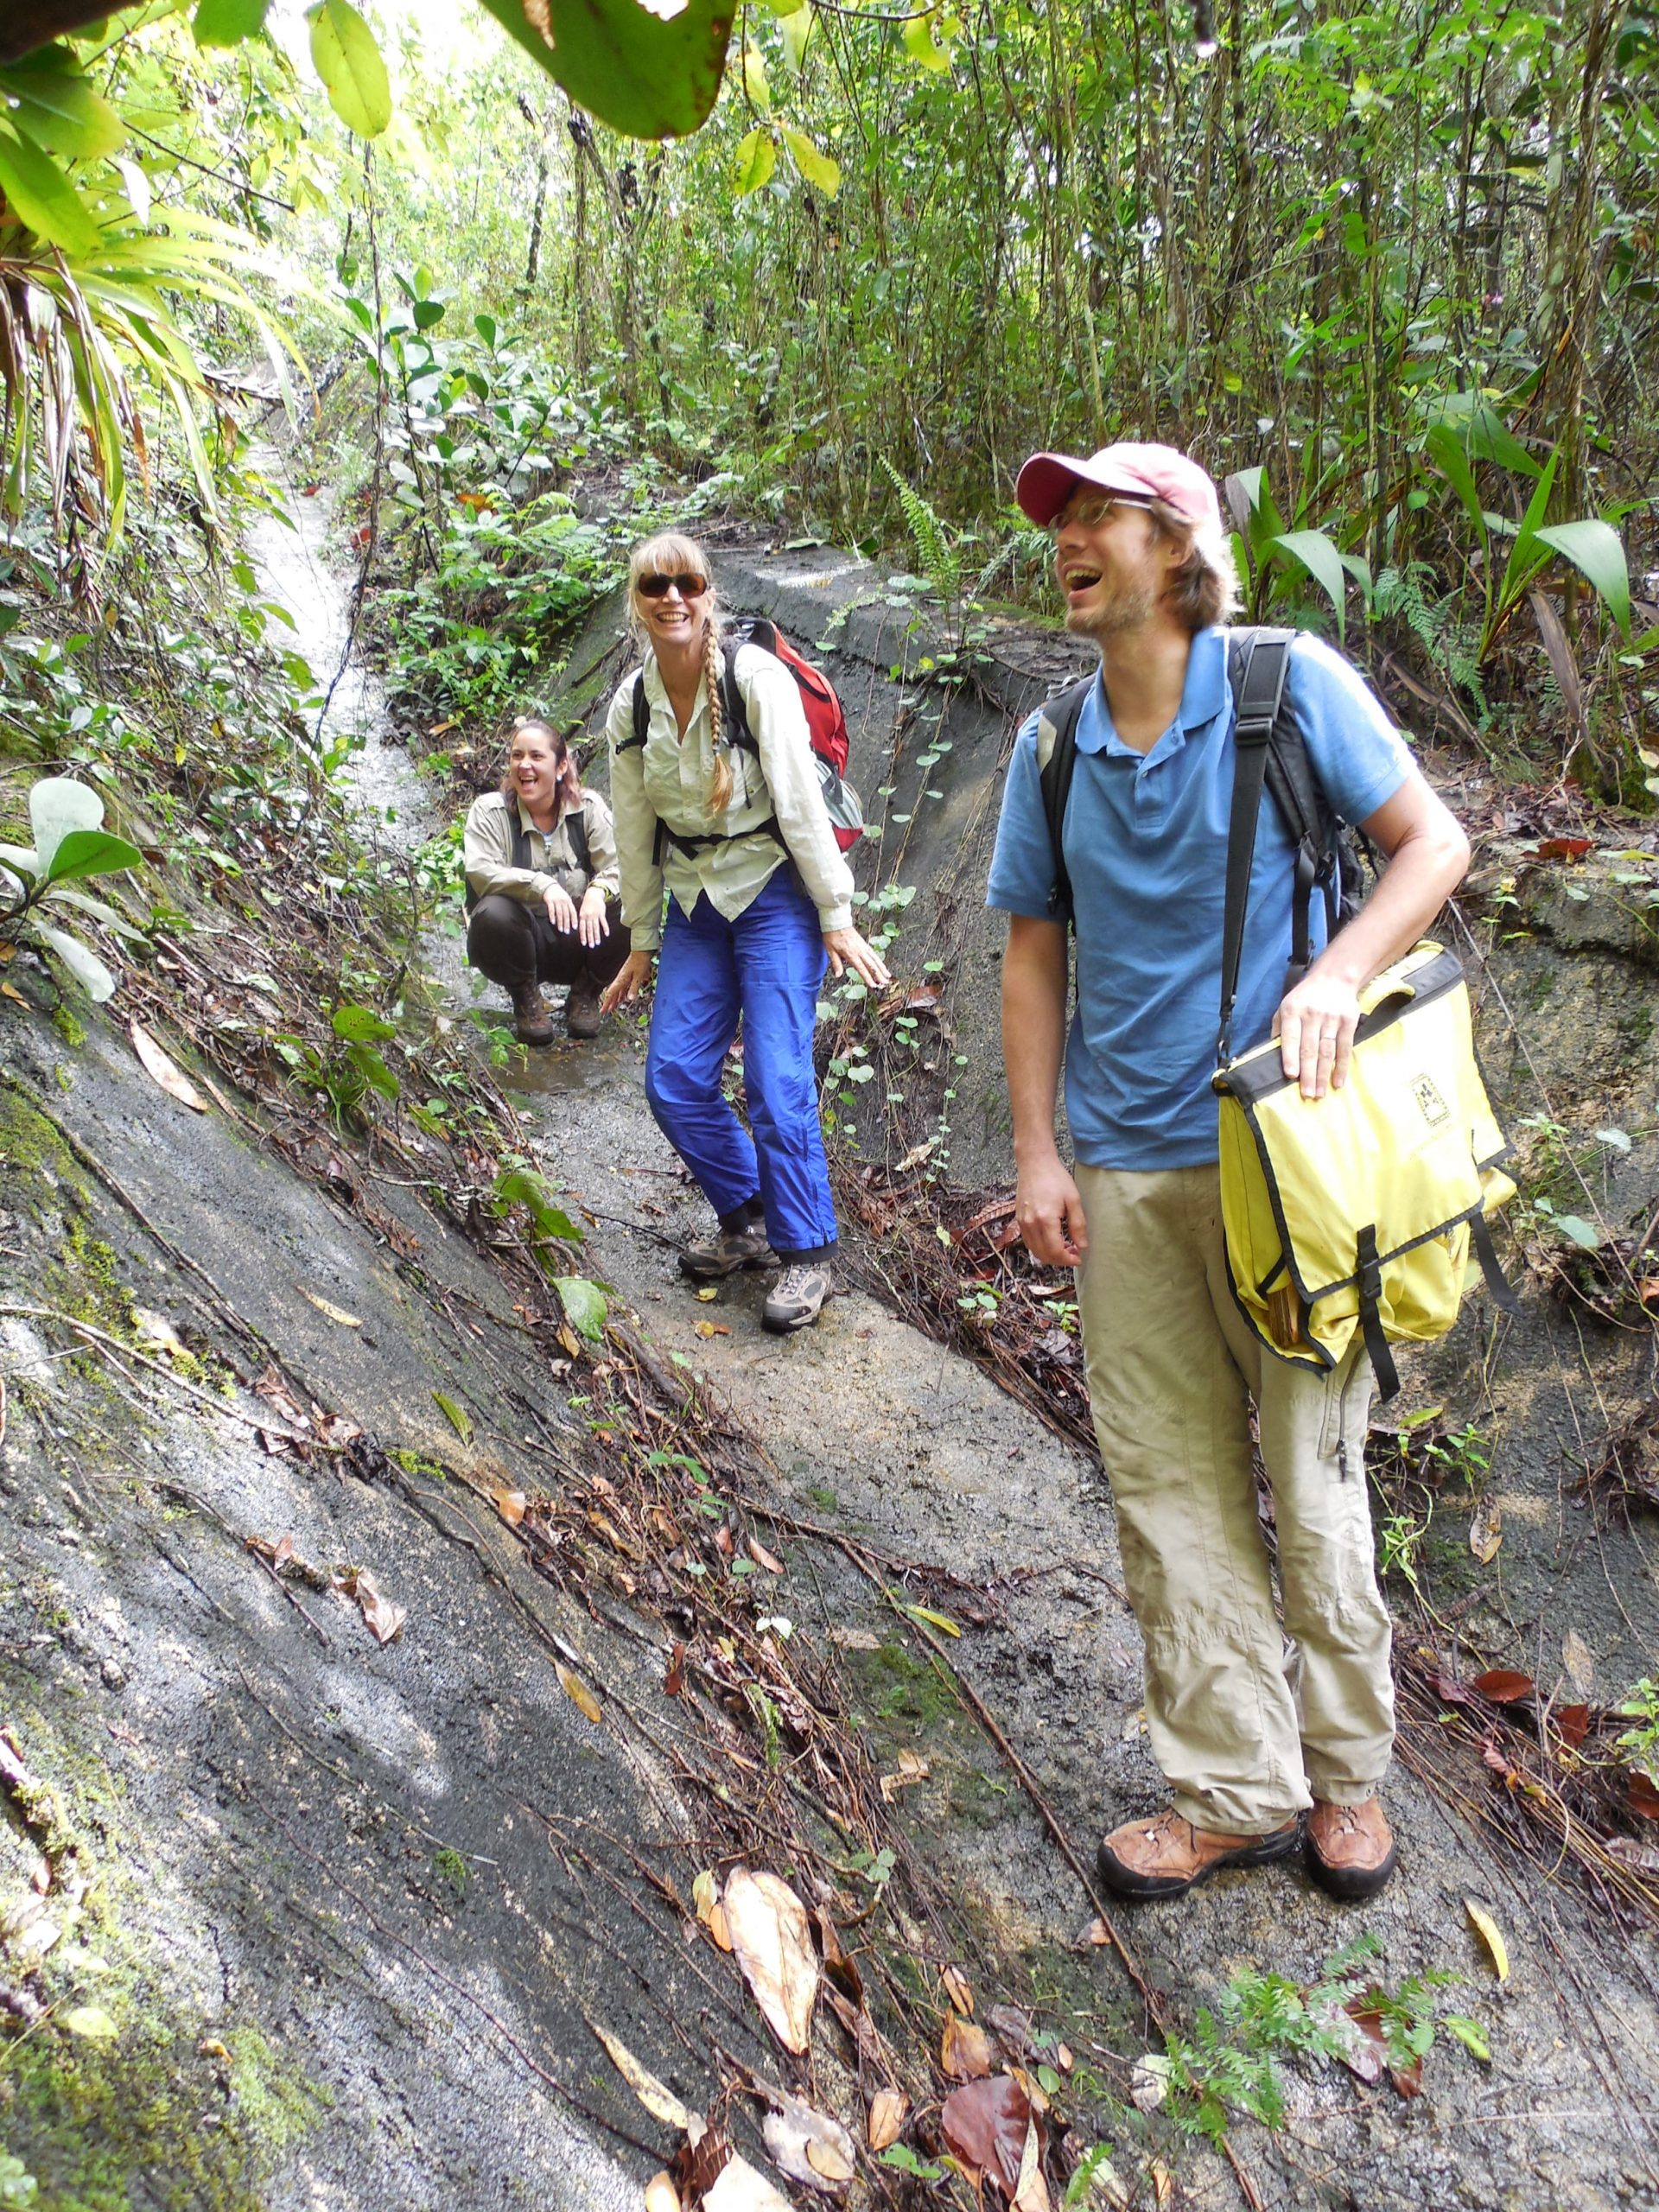 Joyce and colleagues negotiate a very slippery culvert to reach the habitat of the endangered fern Tectaria estremerana growing in Rio Abajo, Puerto Rico.